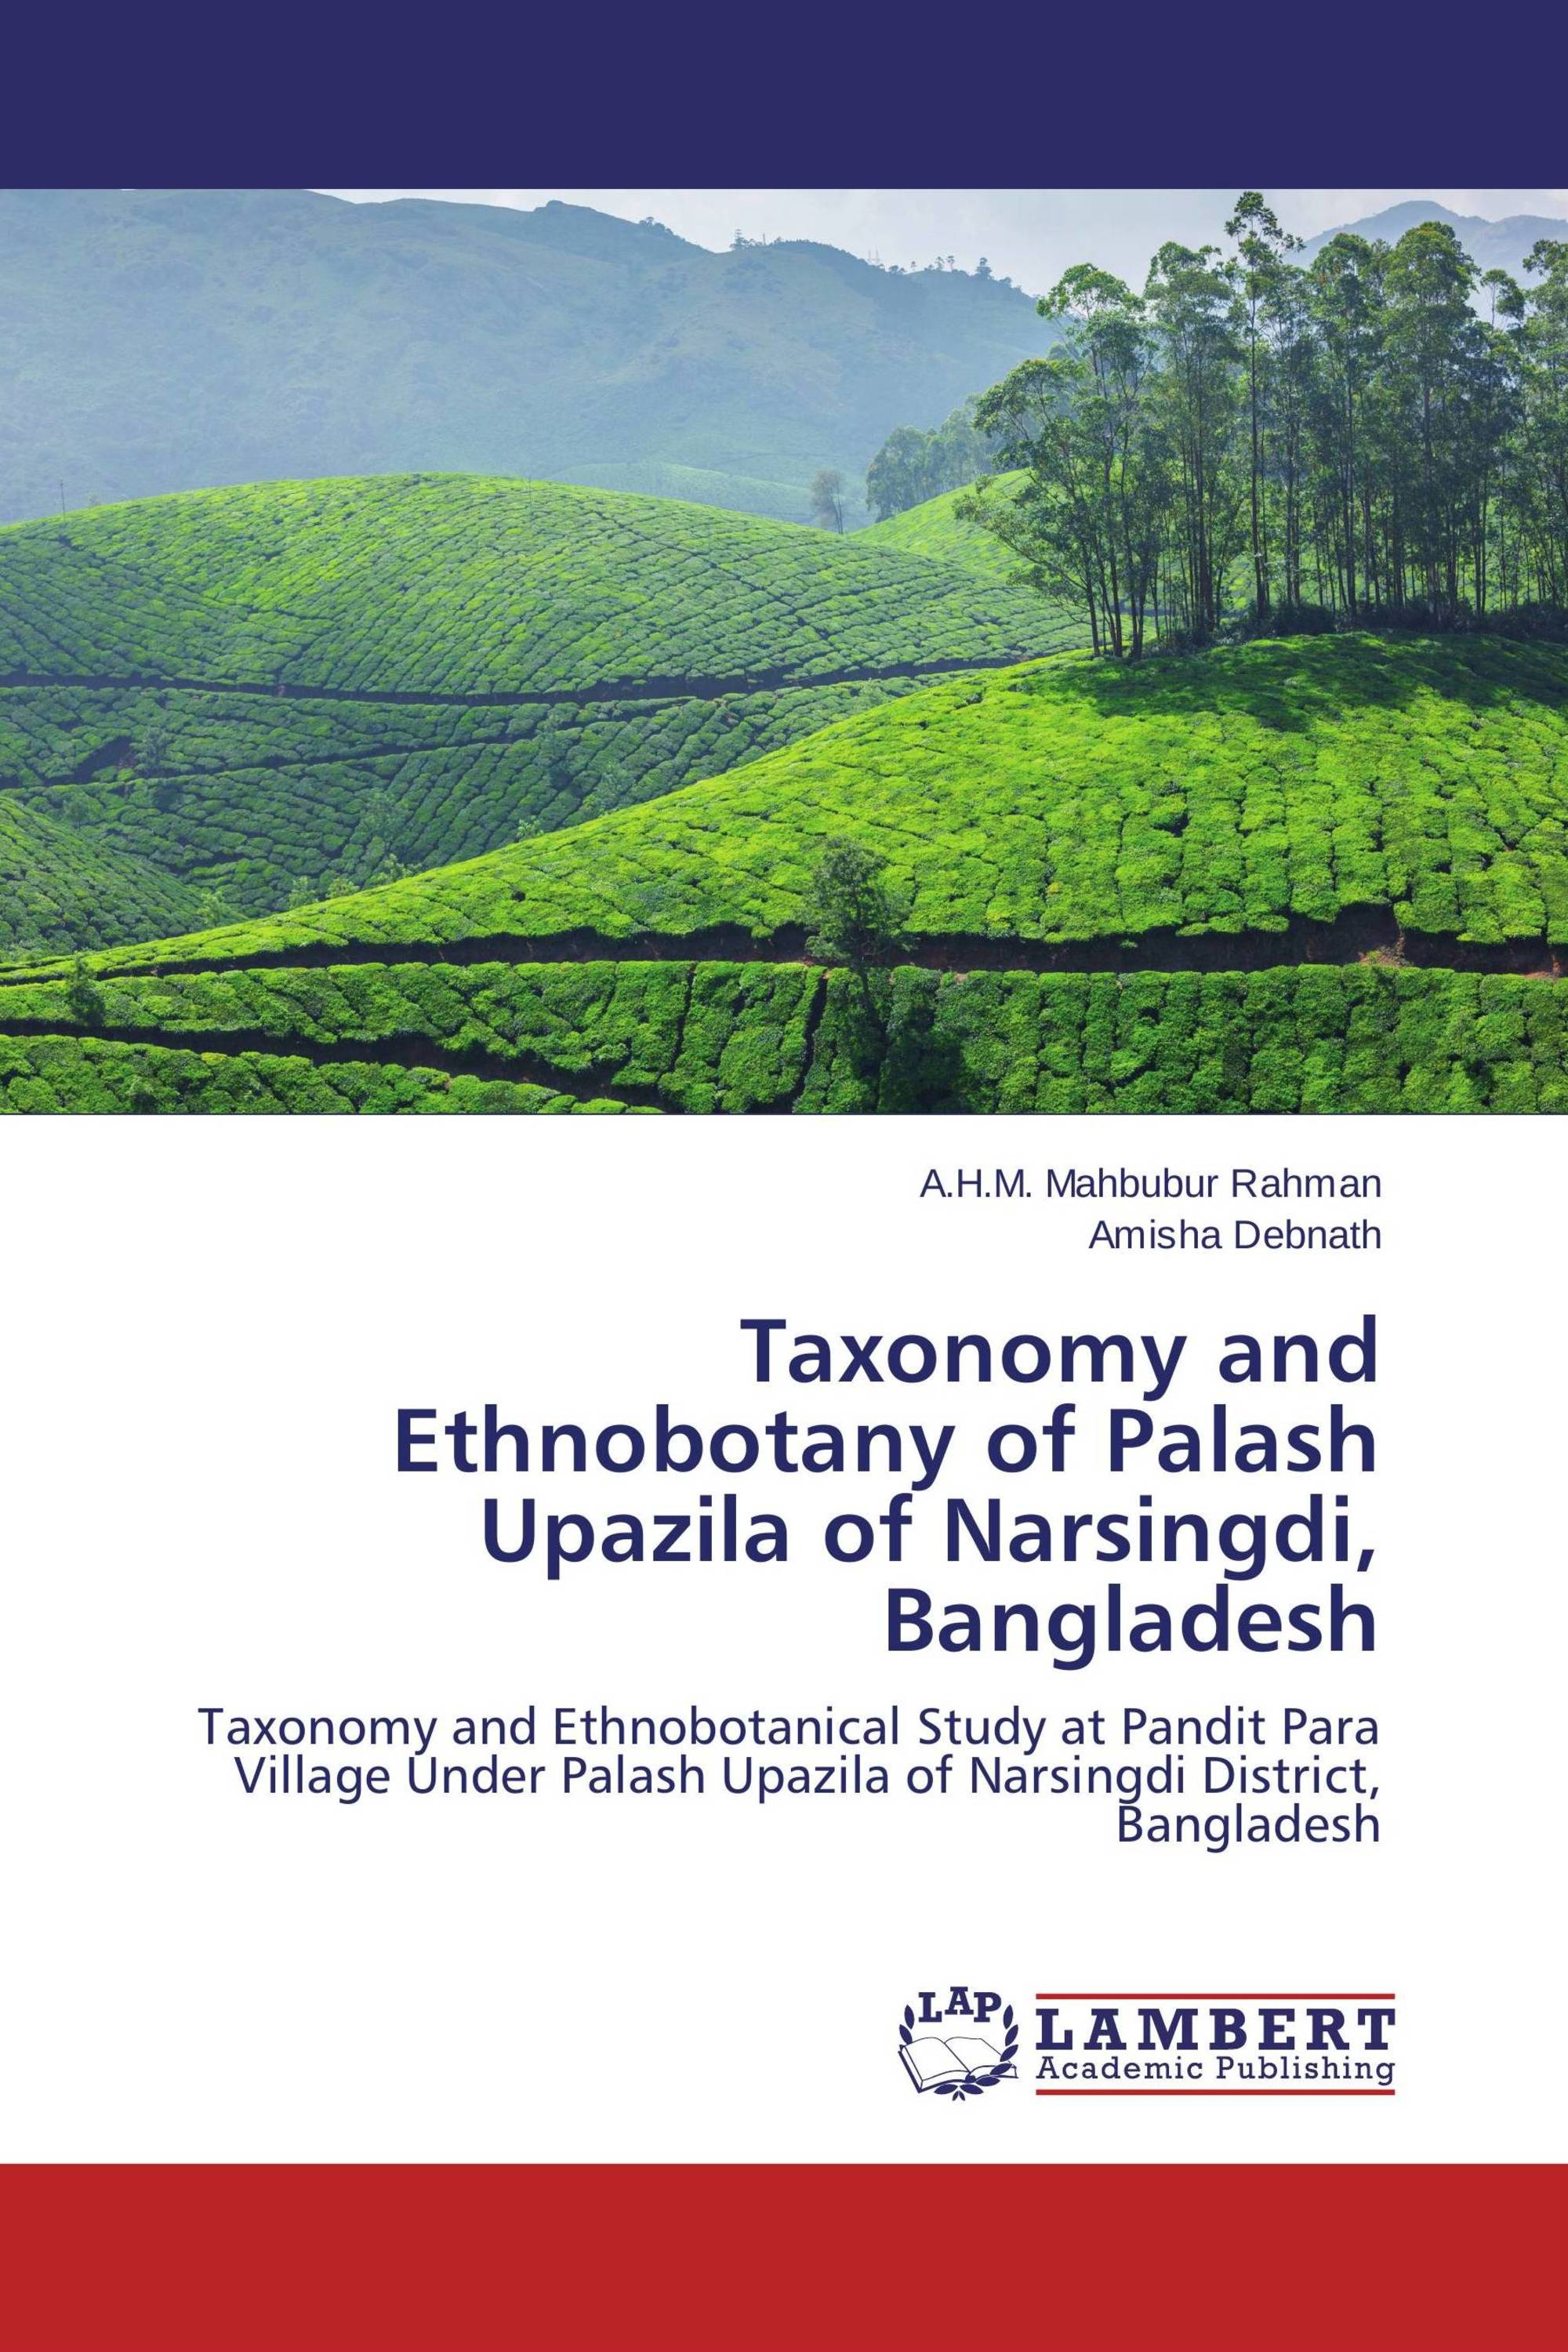 Taxonomy and Ethnobotany of Palash Upazila of Narsingdi, Bangladesh